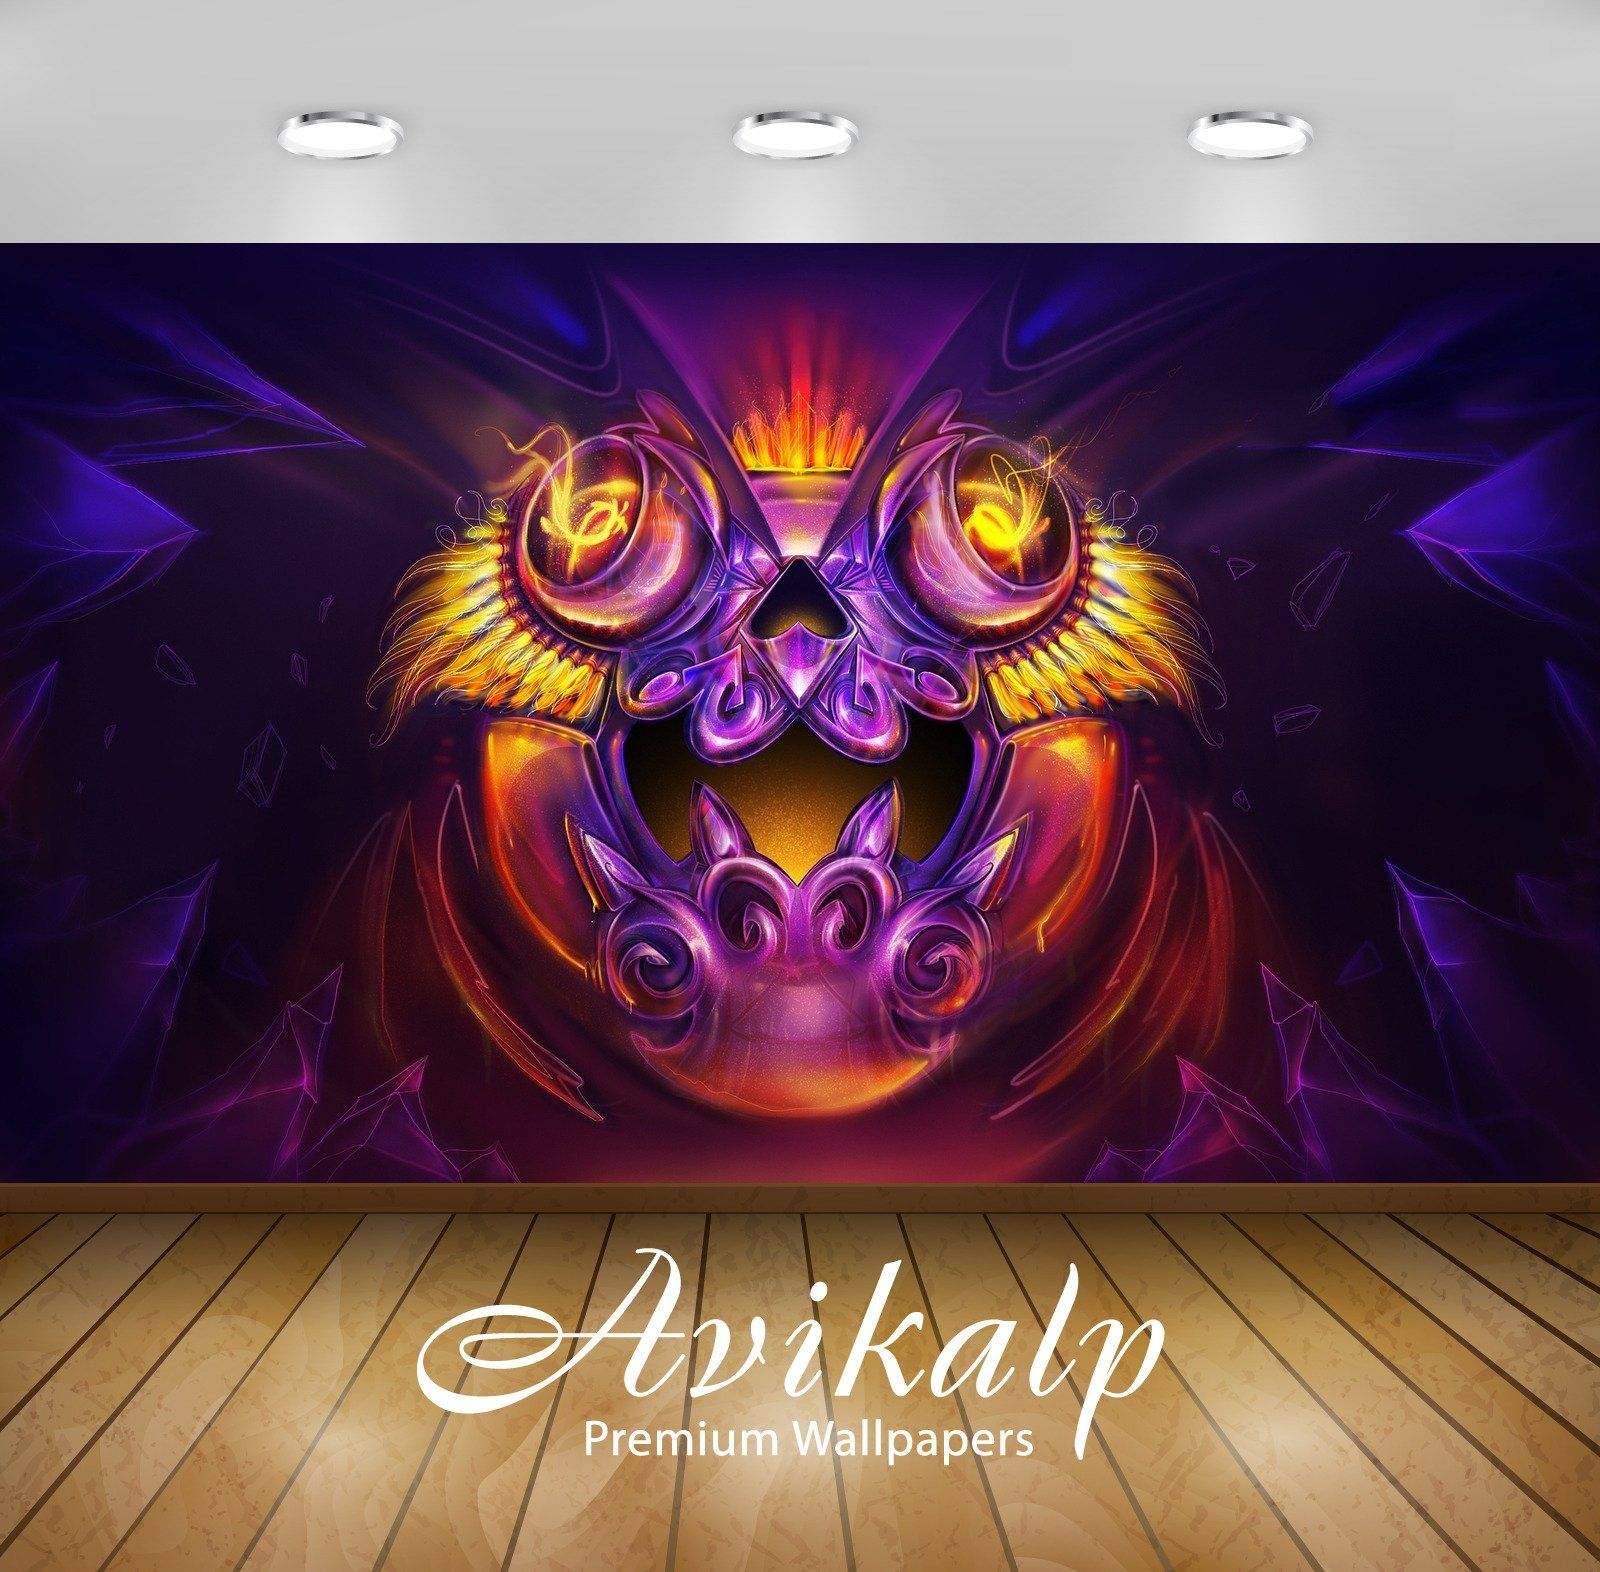 Avikalp Exclusive Awi4314 Fire Monster Full Hd Wallpapers For Living Room Hall Kids Room Kitchen 3dwallpap Full Hd Wallpaper Wallpaper 3d Wallpaper Ceiling